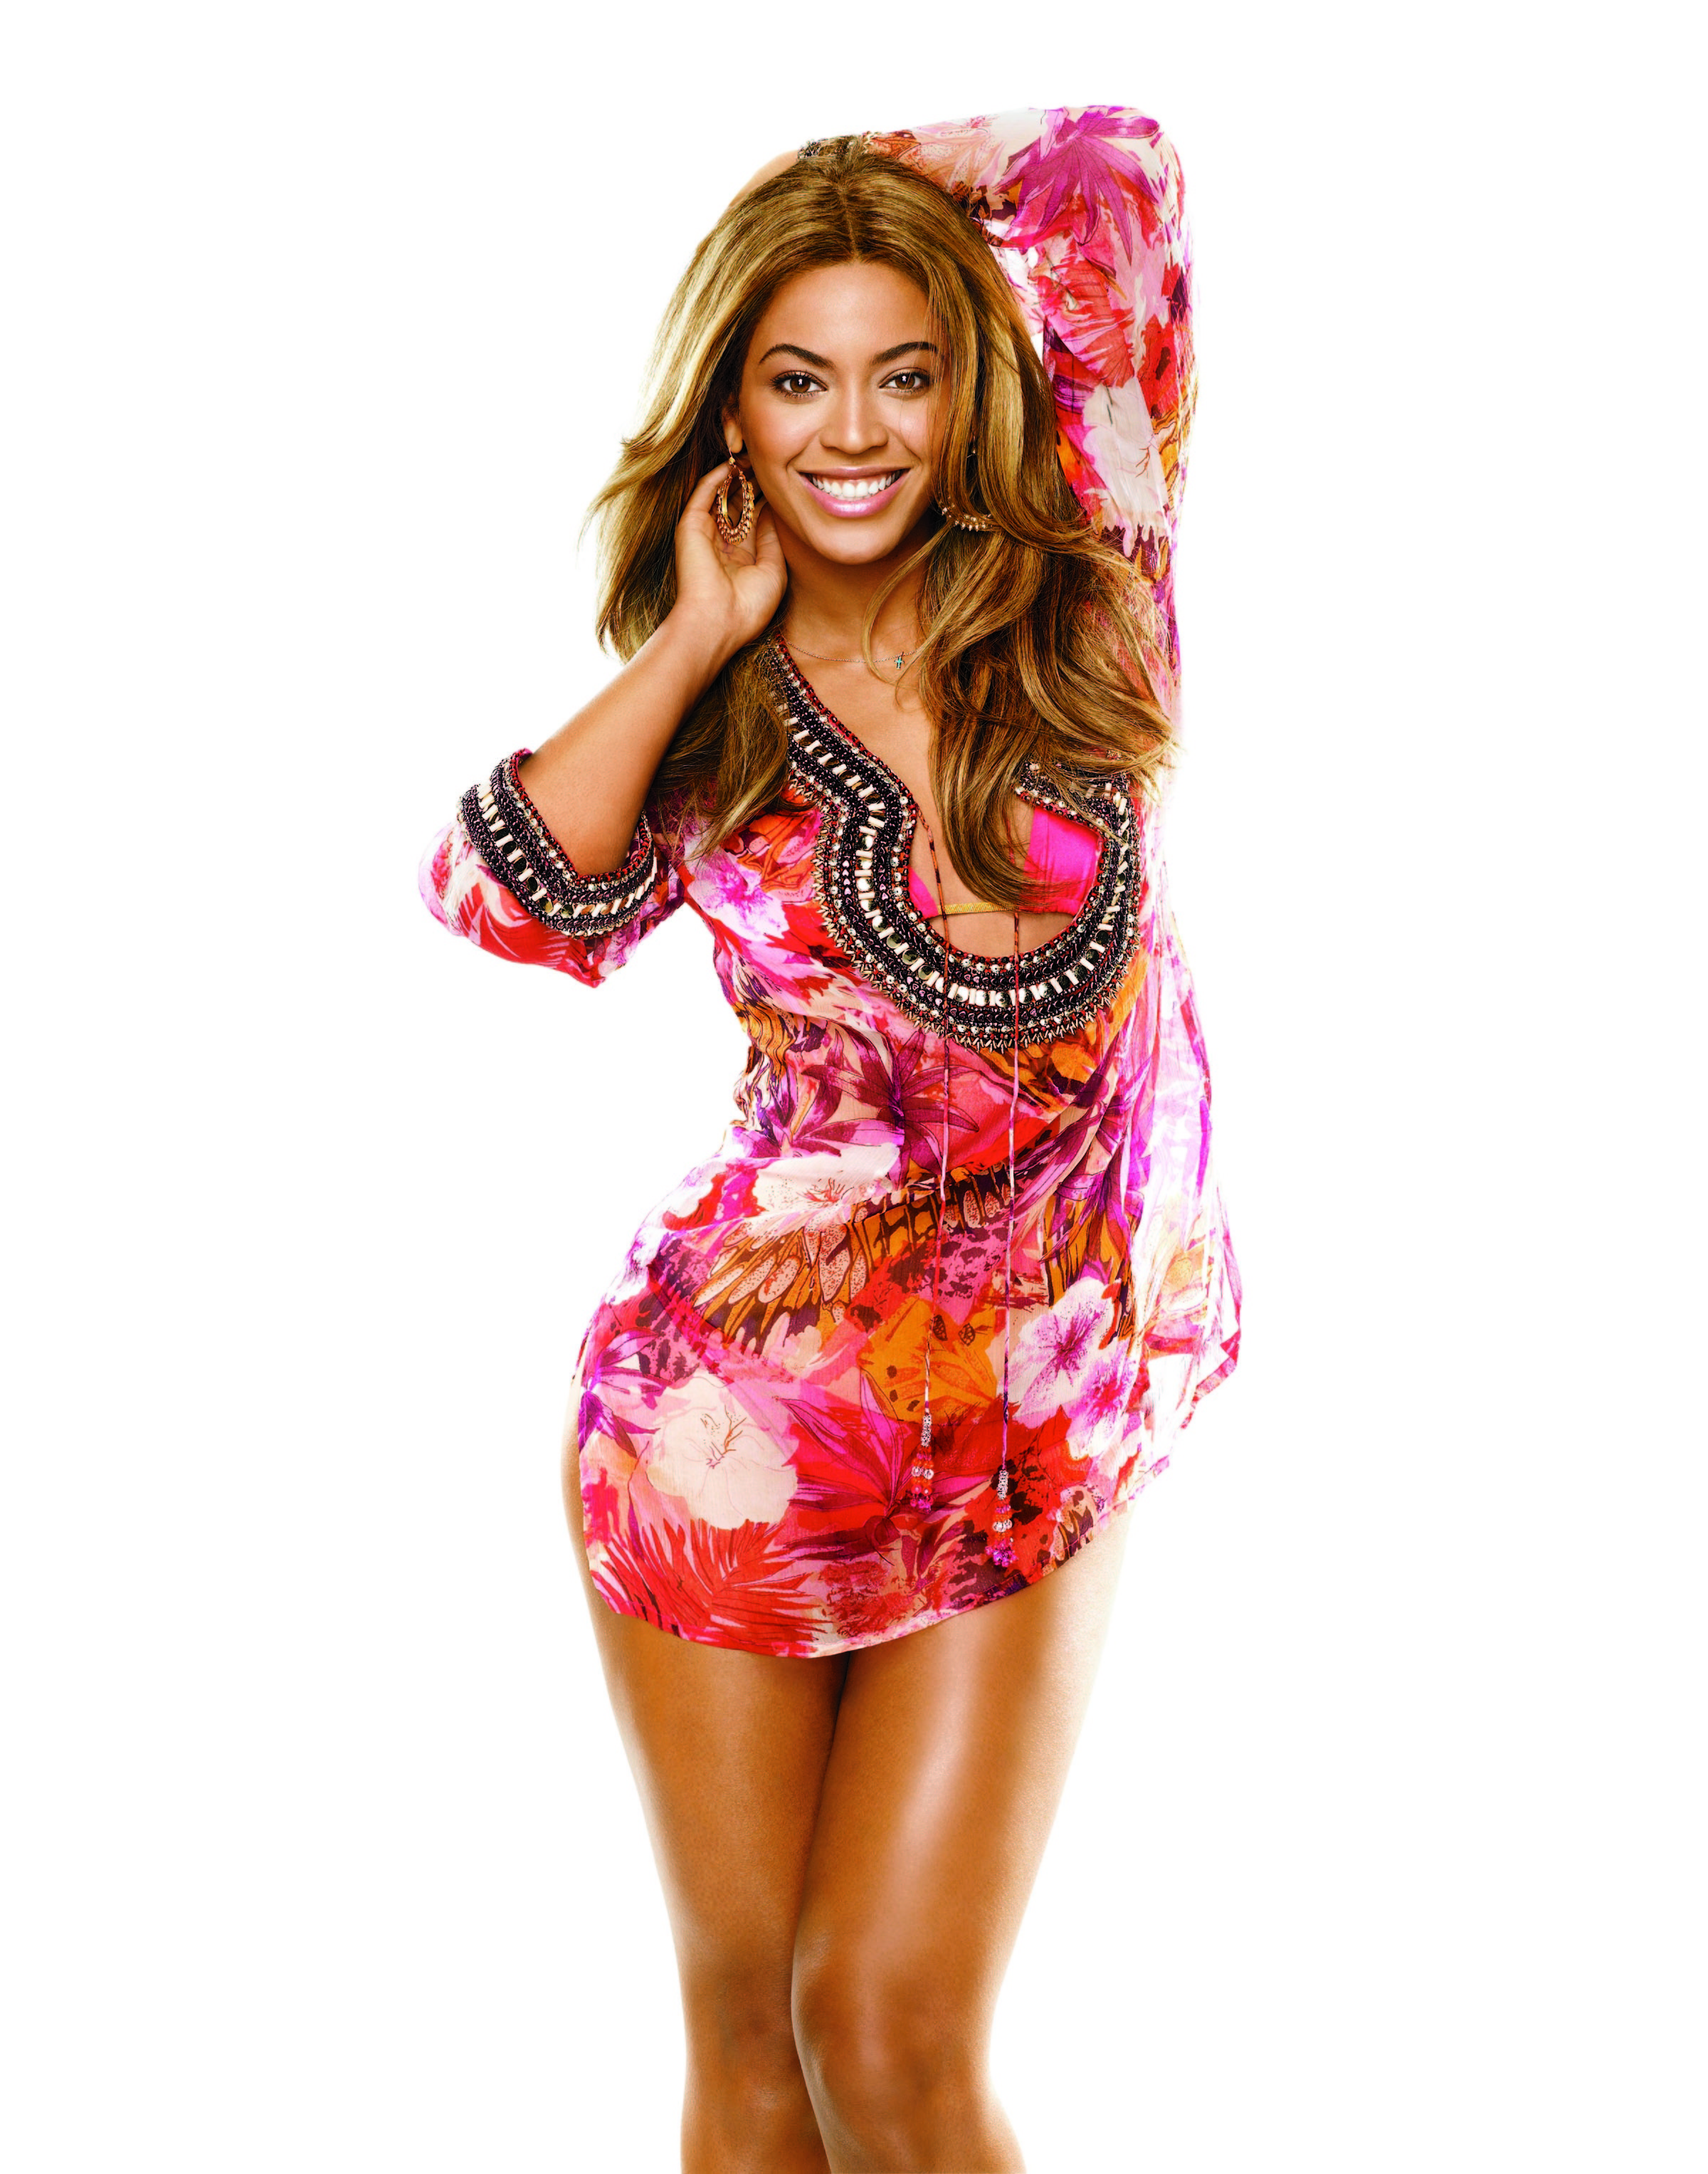 Beyonce in SELF magazine, June 2009